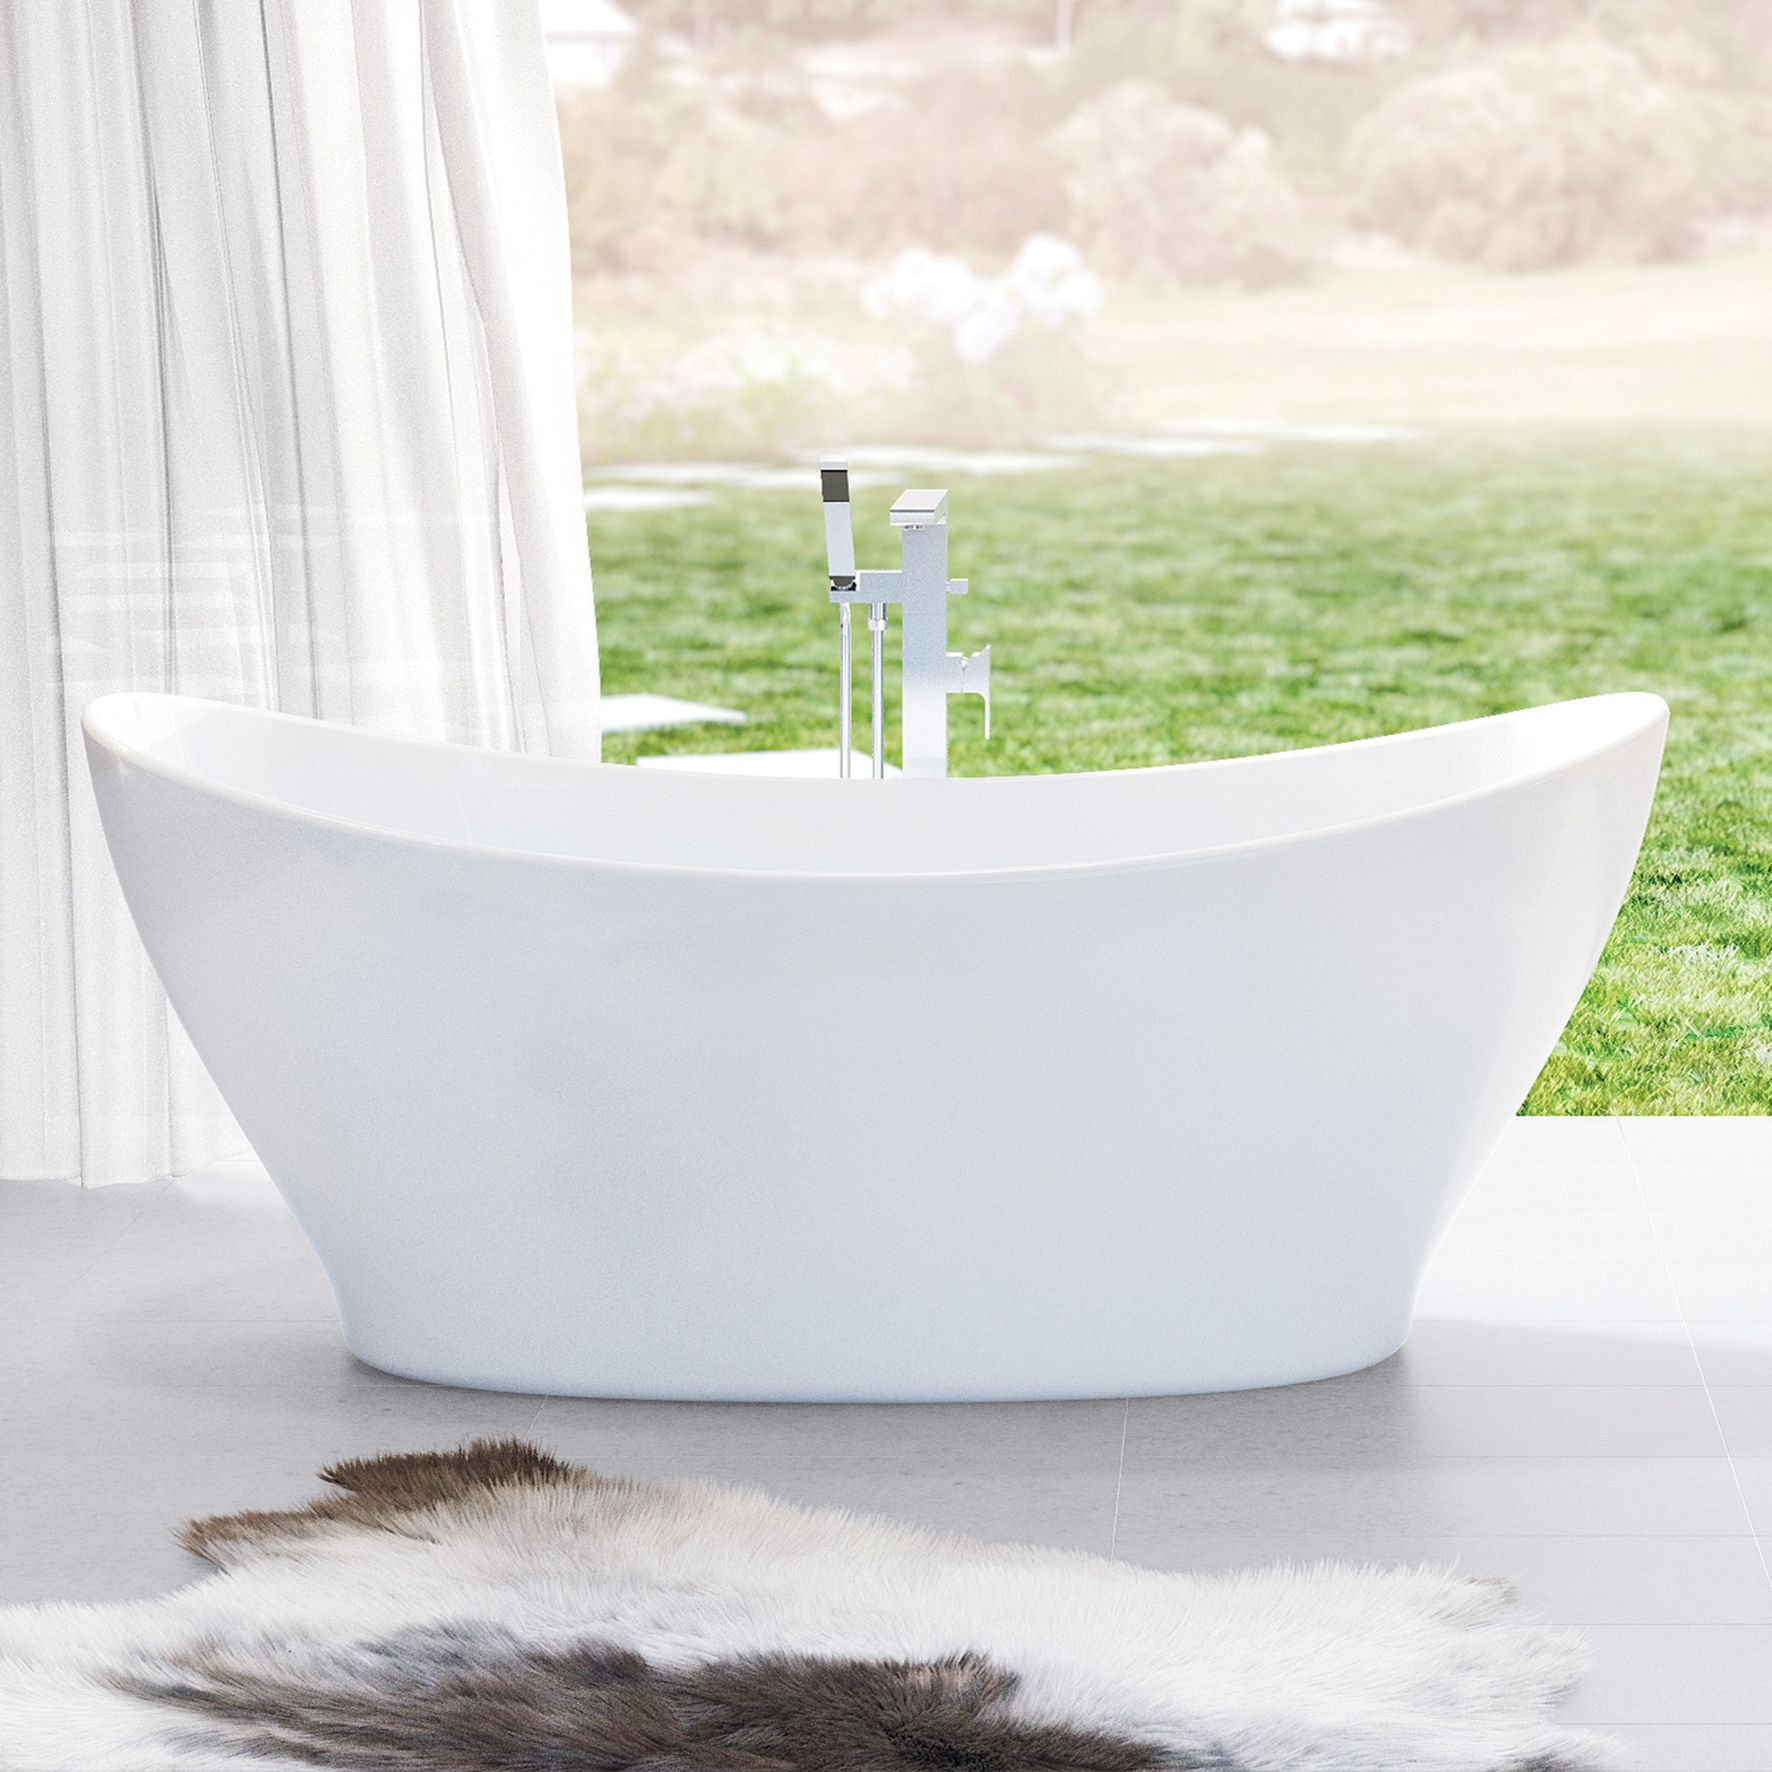 Caroma Cupid 1700 Freestanding Bath - curved vessel design http ...